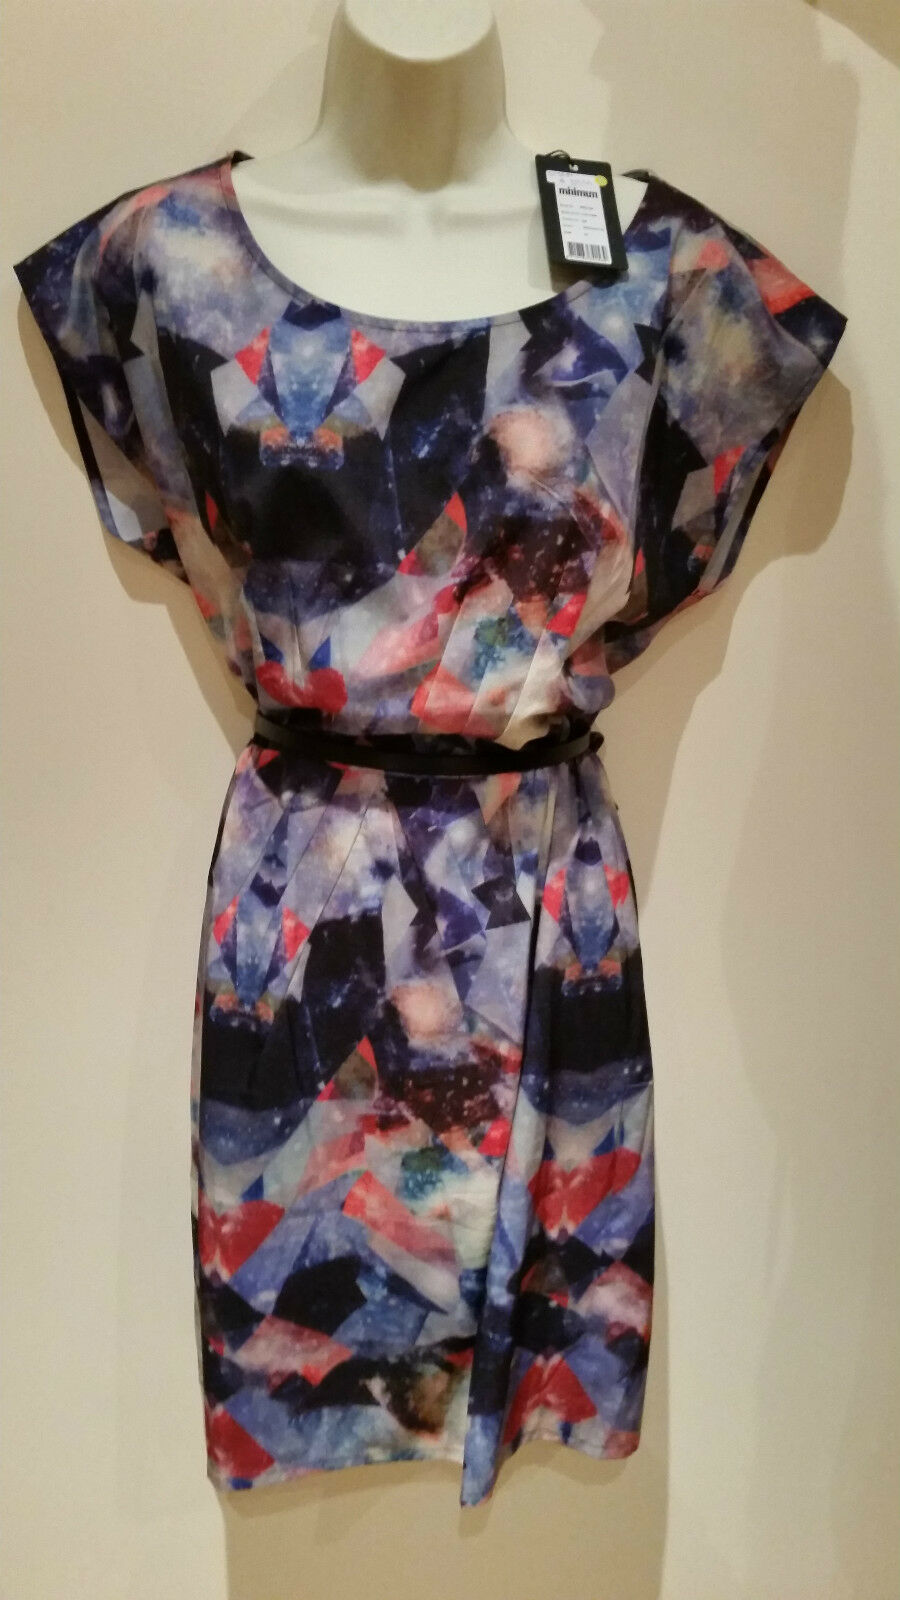 690d5379b0a ... BNWT Minimum Udia Udia Udia Galaxy Print Dress Size 38 Red bluee  Unusual Quirky Fun 477bae ...